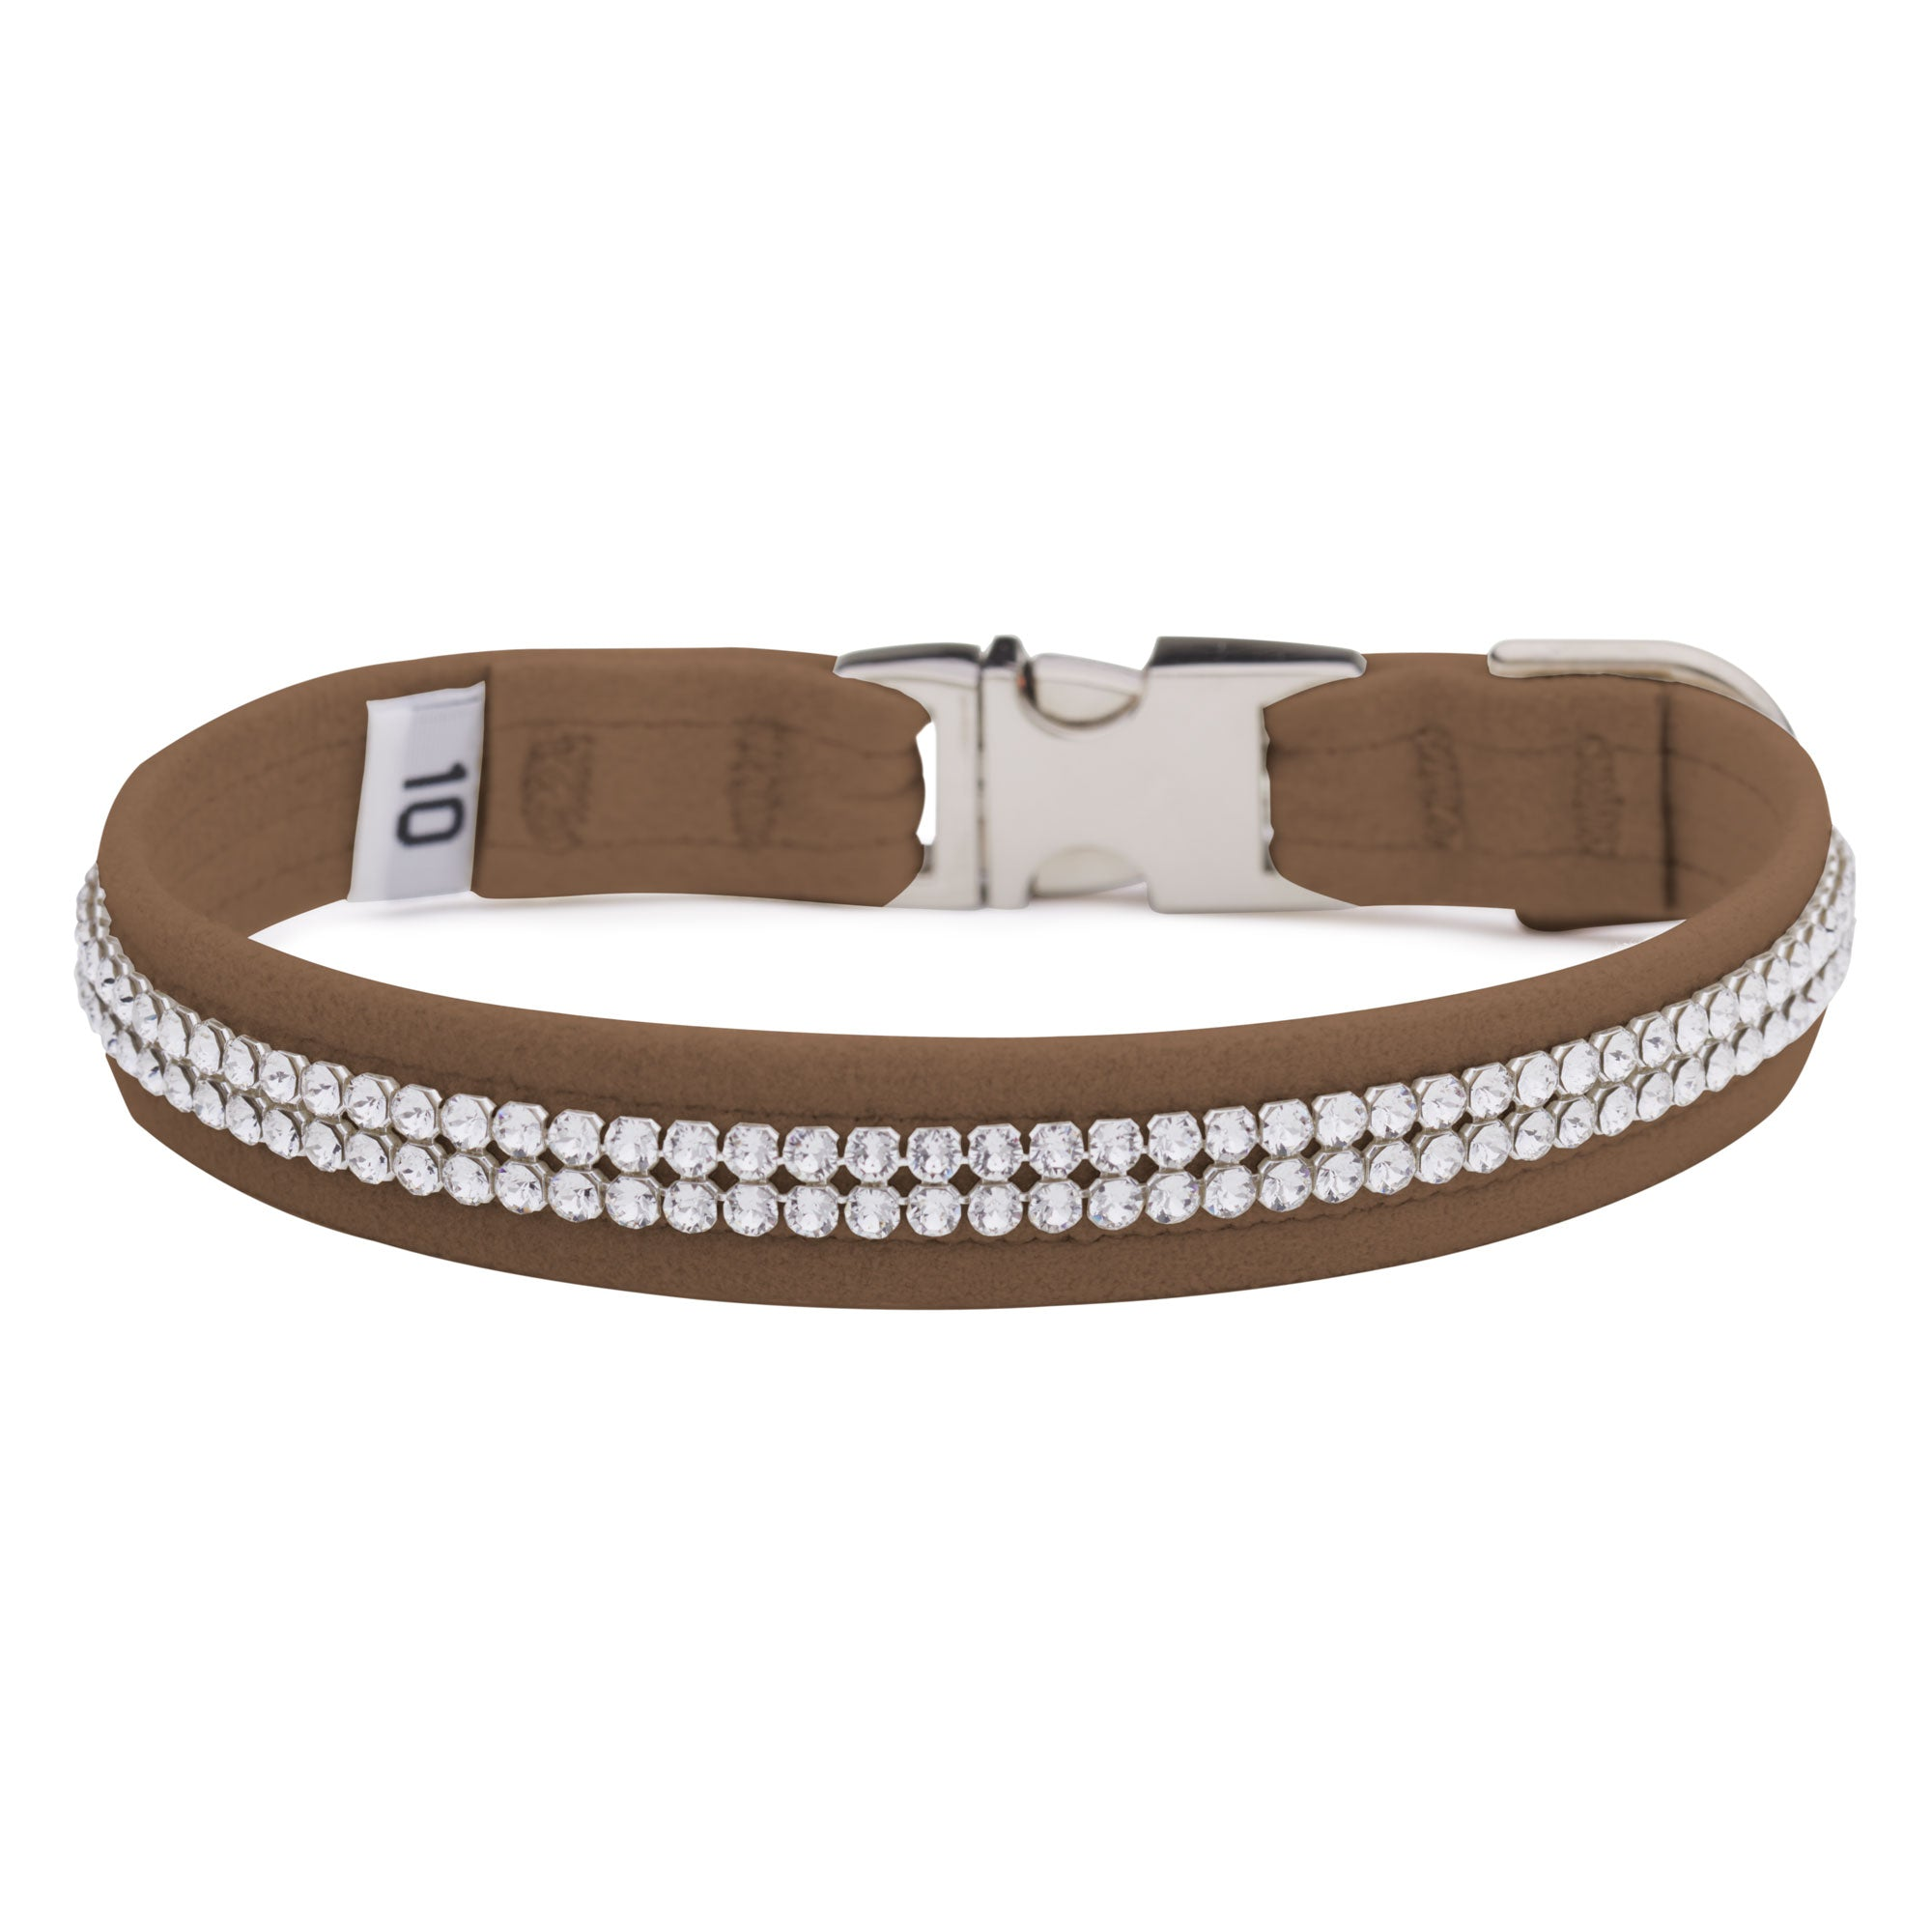 Fawn 2 Row Giltmore Perfect Fit Collar